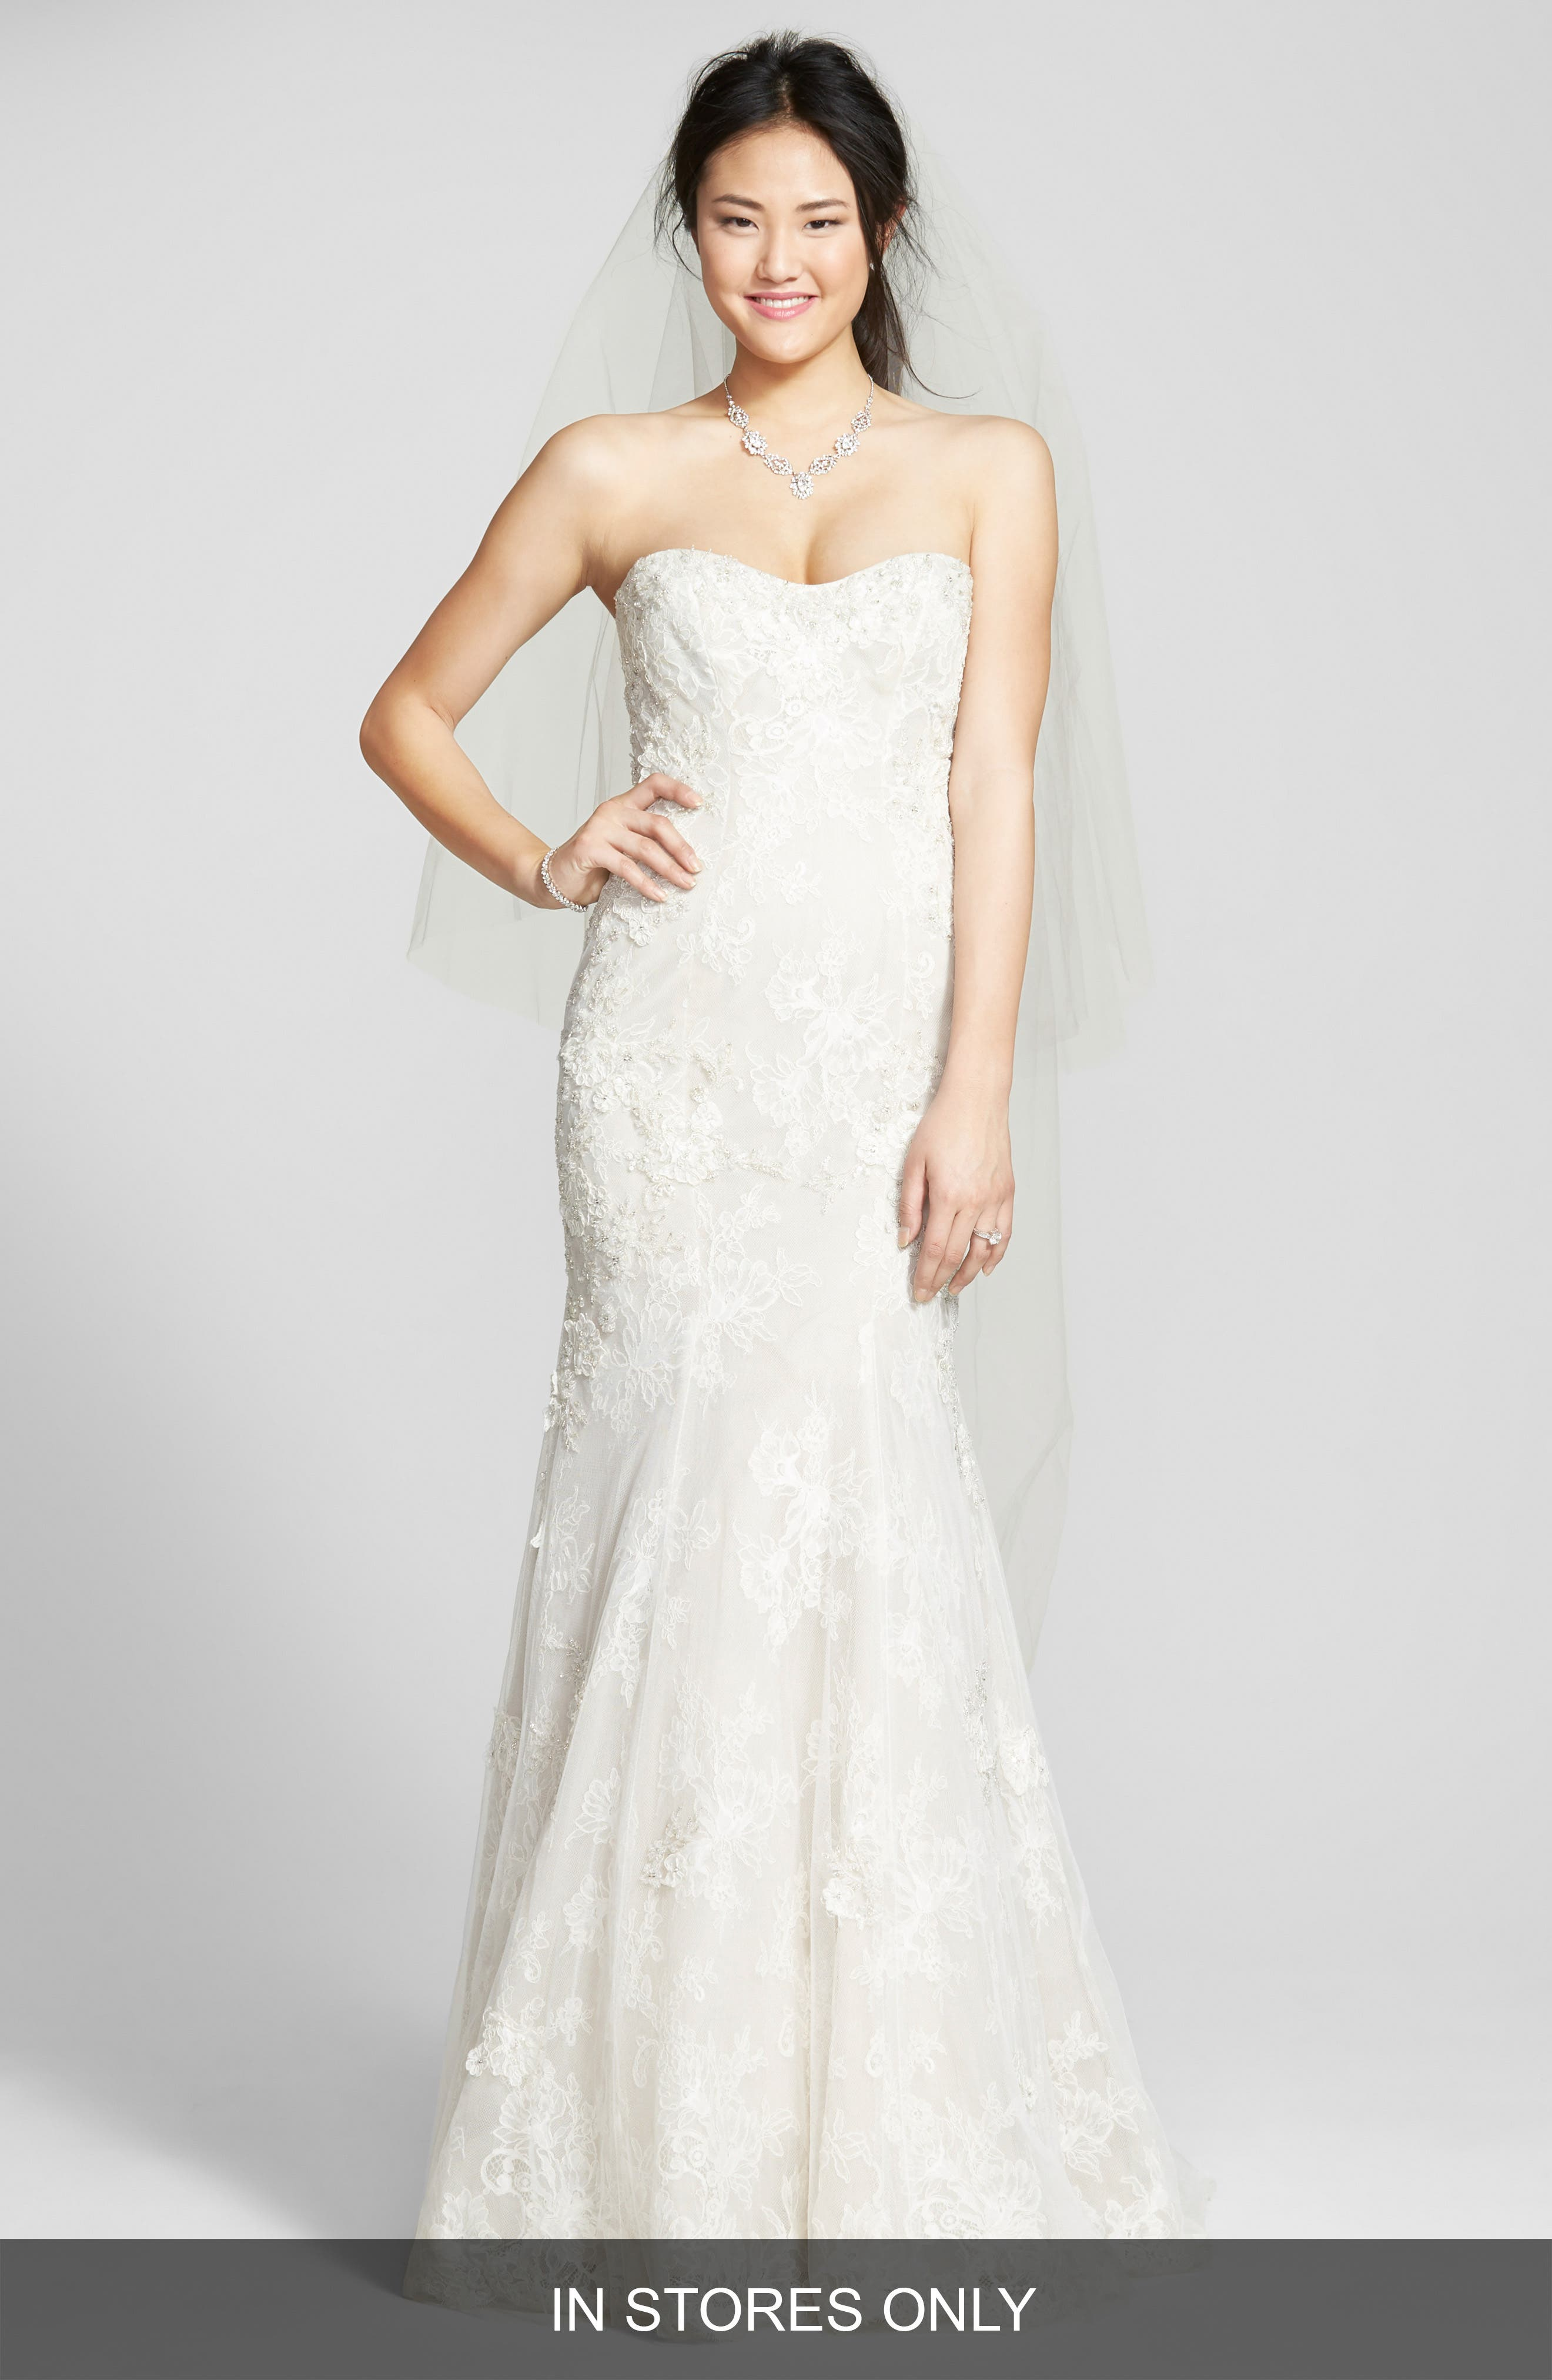 BLISS Monique Lhuillier Strapless Beaded Lace Trumpet Gown (In Stores Only)